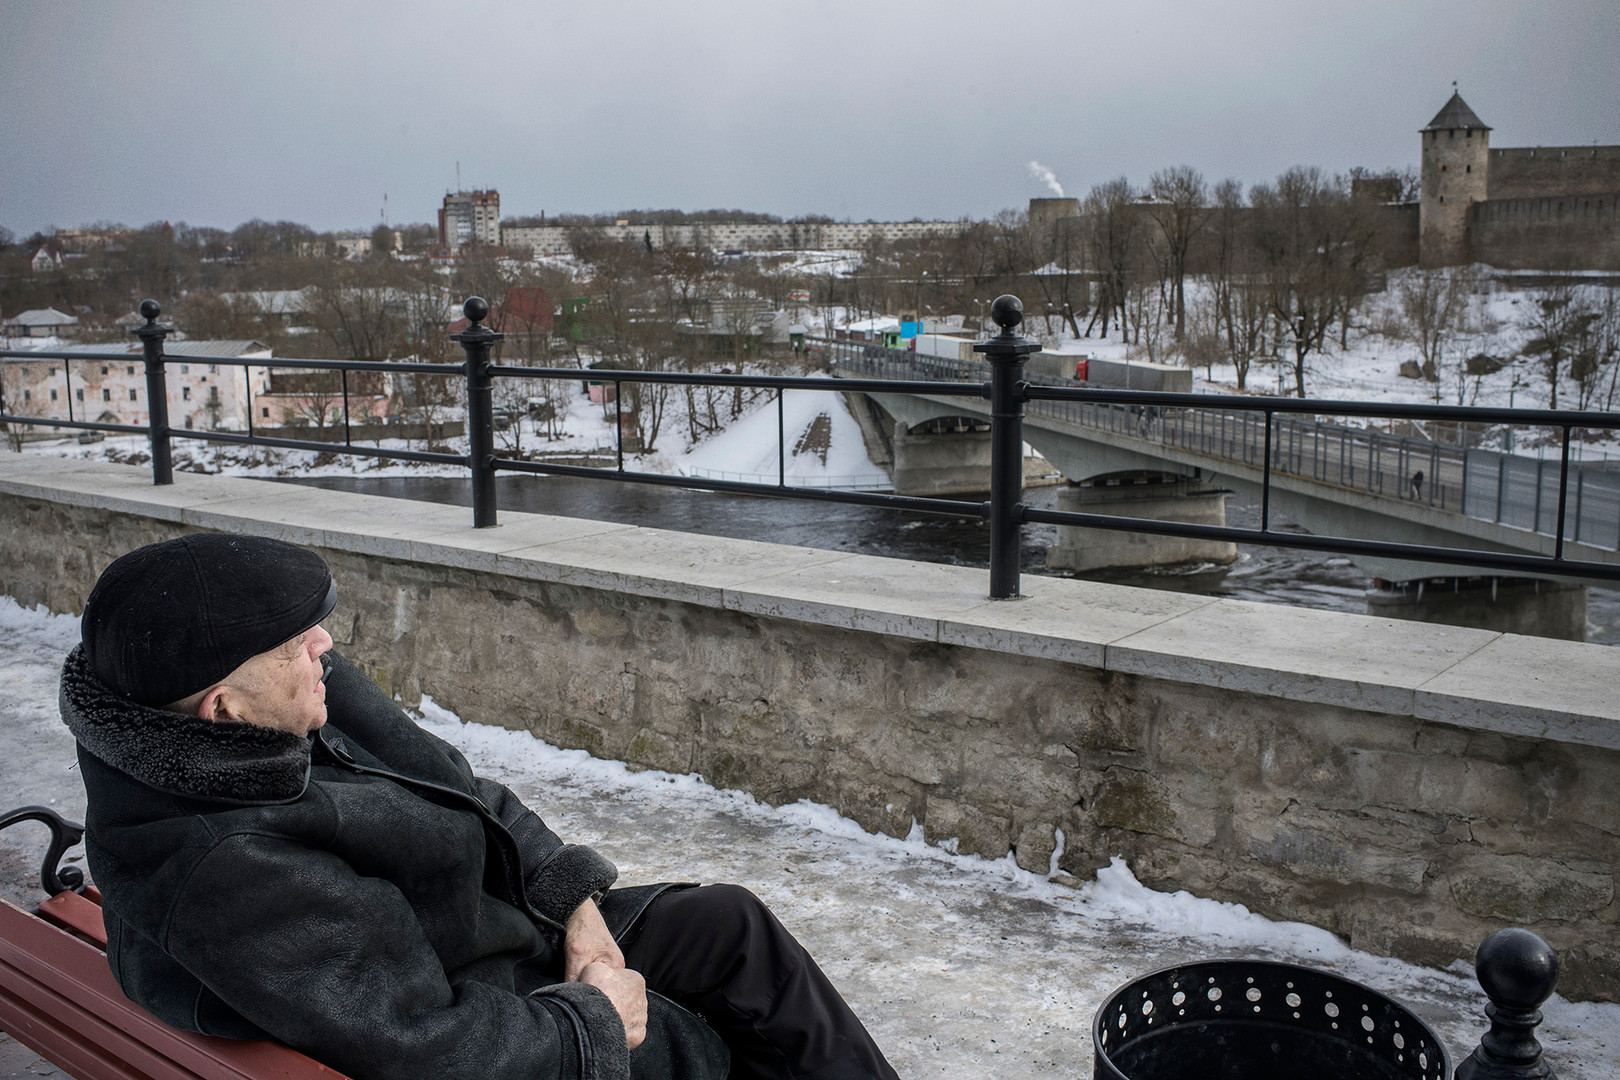 A Russian speaking man is sitting on a bench by the river Narva in the city with the same name. Over the river runs a bridge connecting Estonia and Russia.